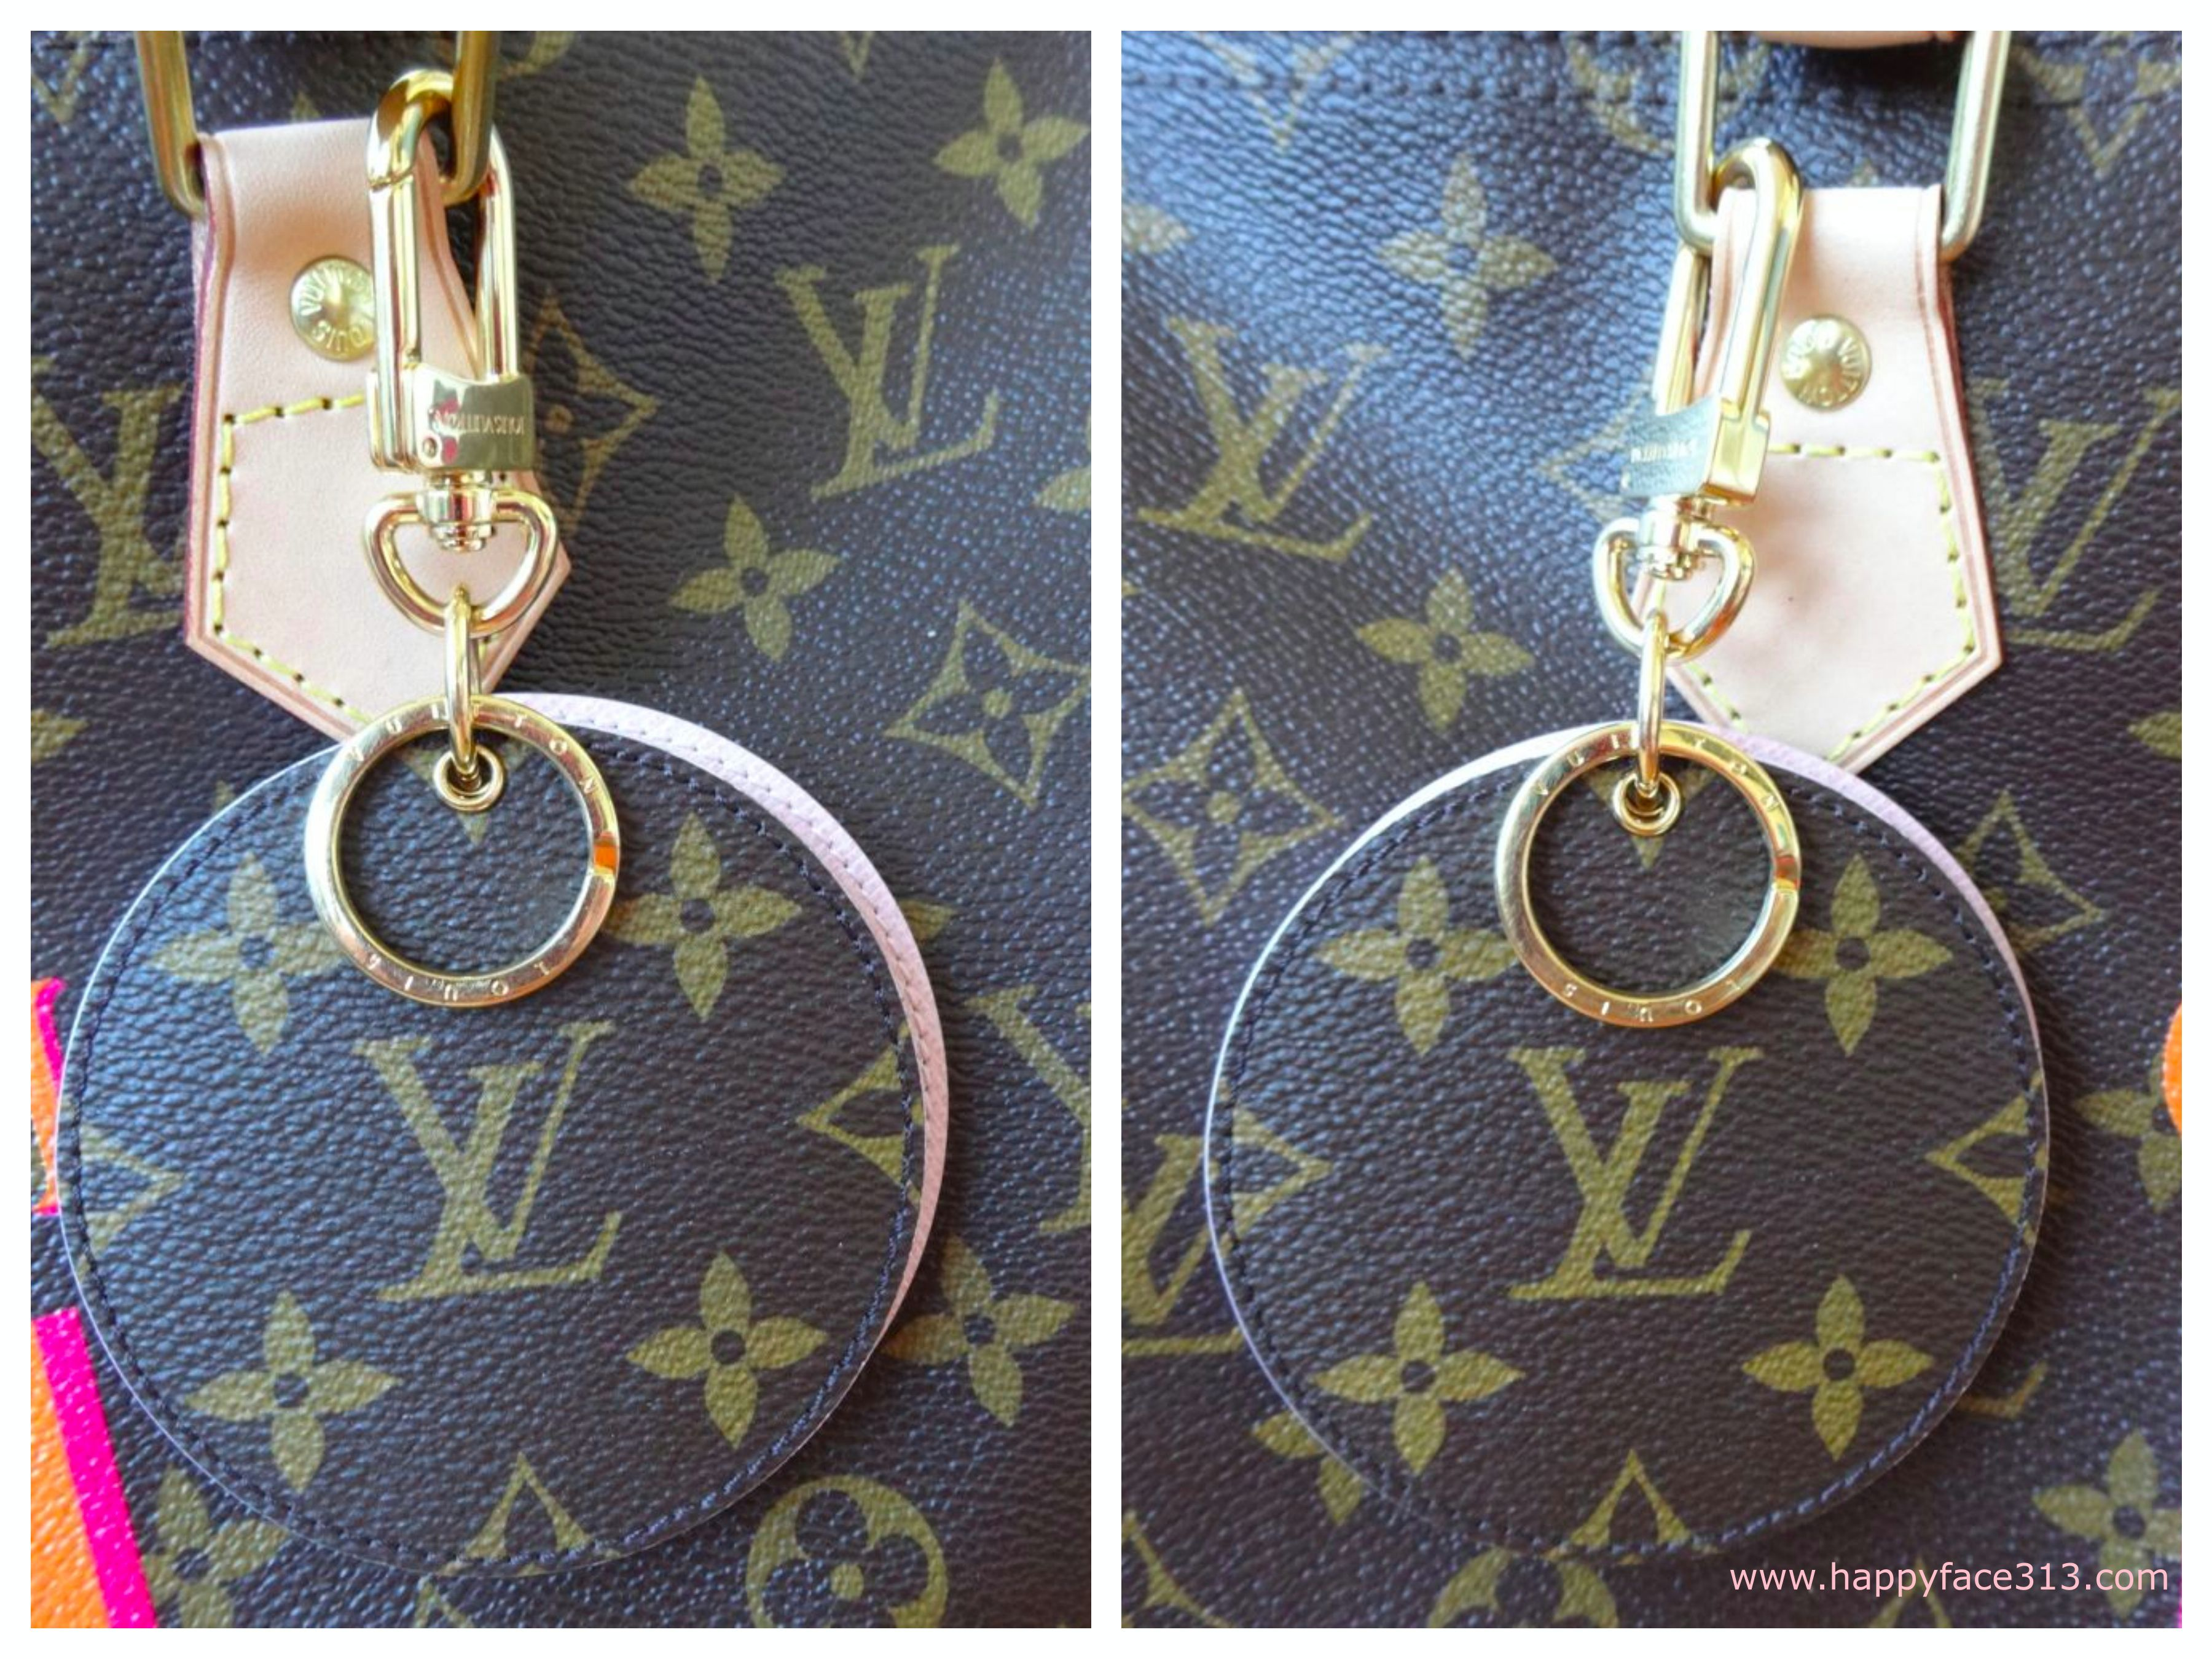 louis vuitton monogram key holder bag charm taschenschmuck my little louis vuitton. Black Bedroom Furniture Sets. Home Design Ideas